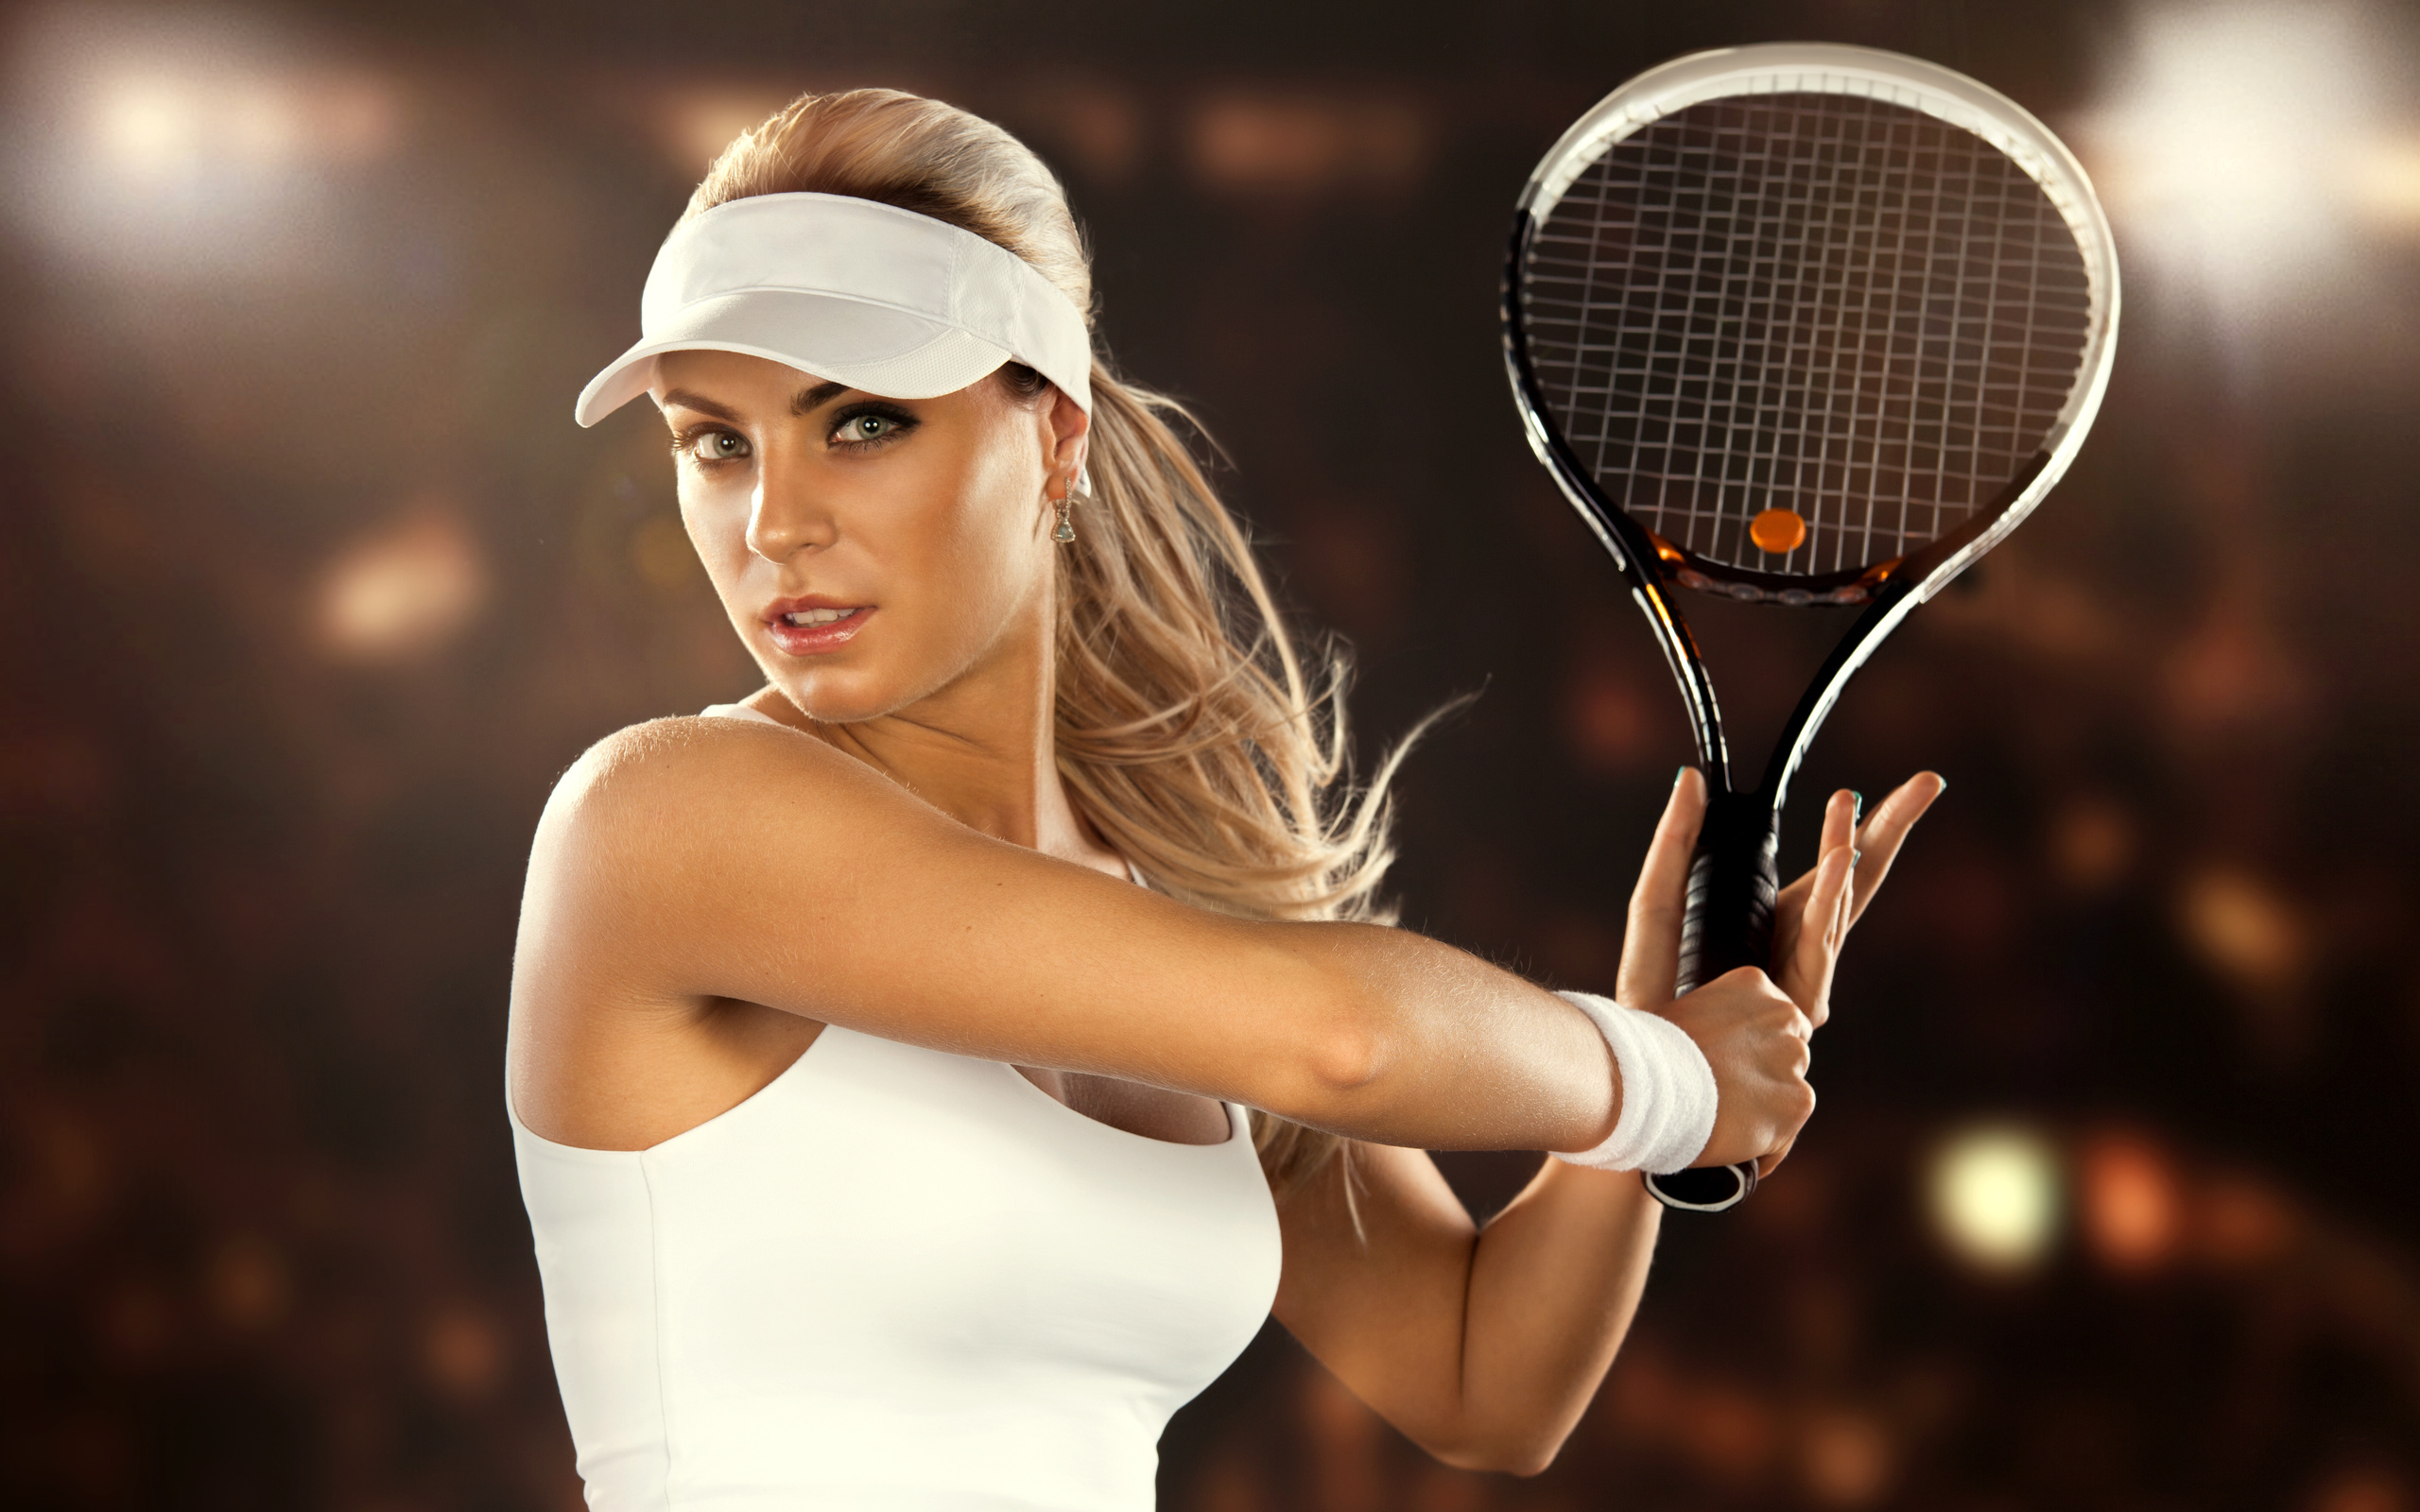 1366x768 Tennis Beauty 1366x768 Resolution Hd 4k Wallpapers Images Backgrounds Photos And Pictures